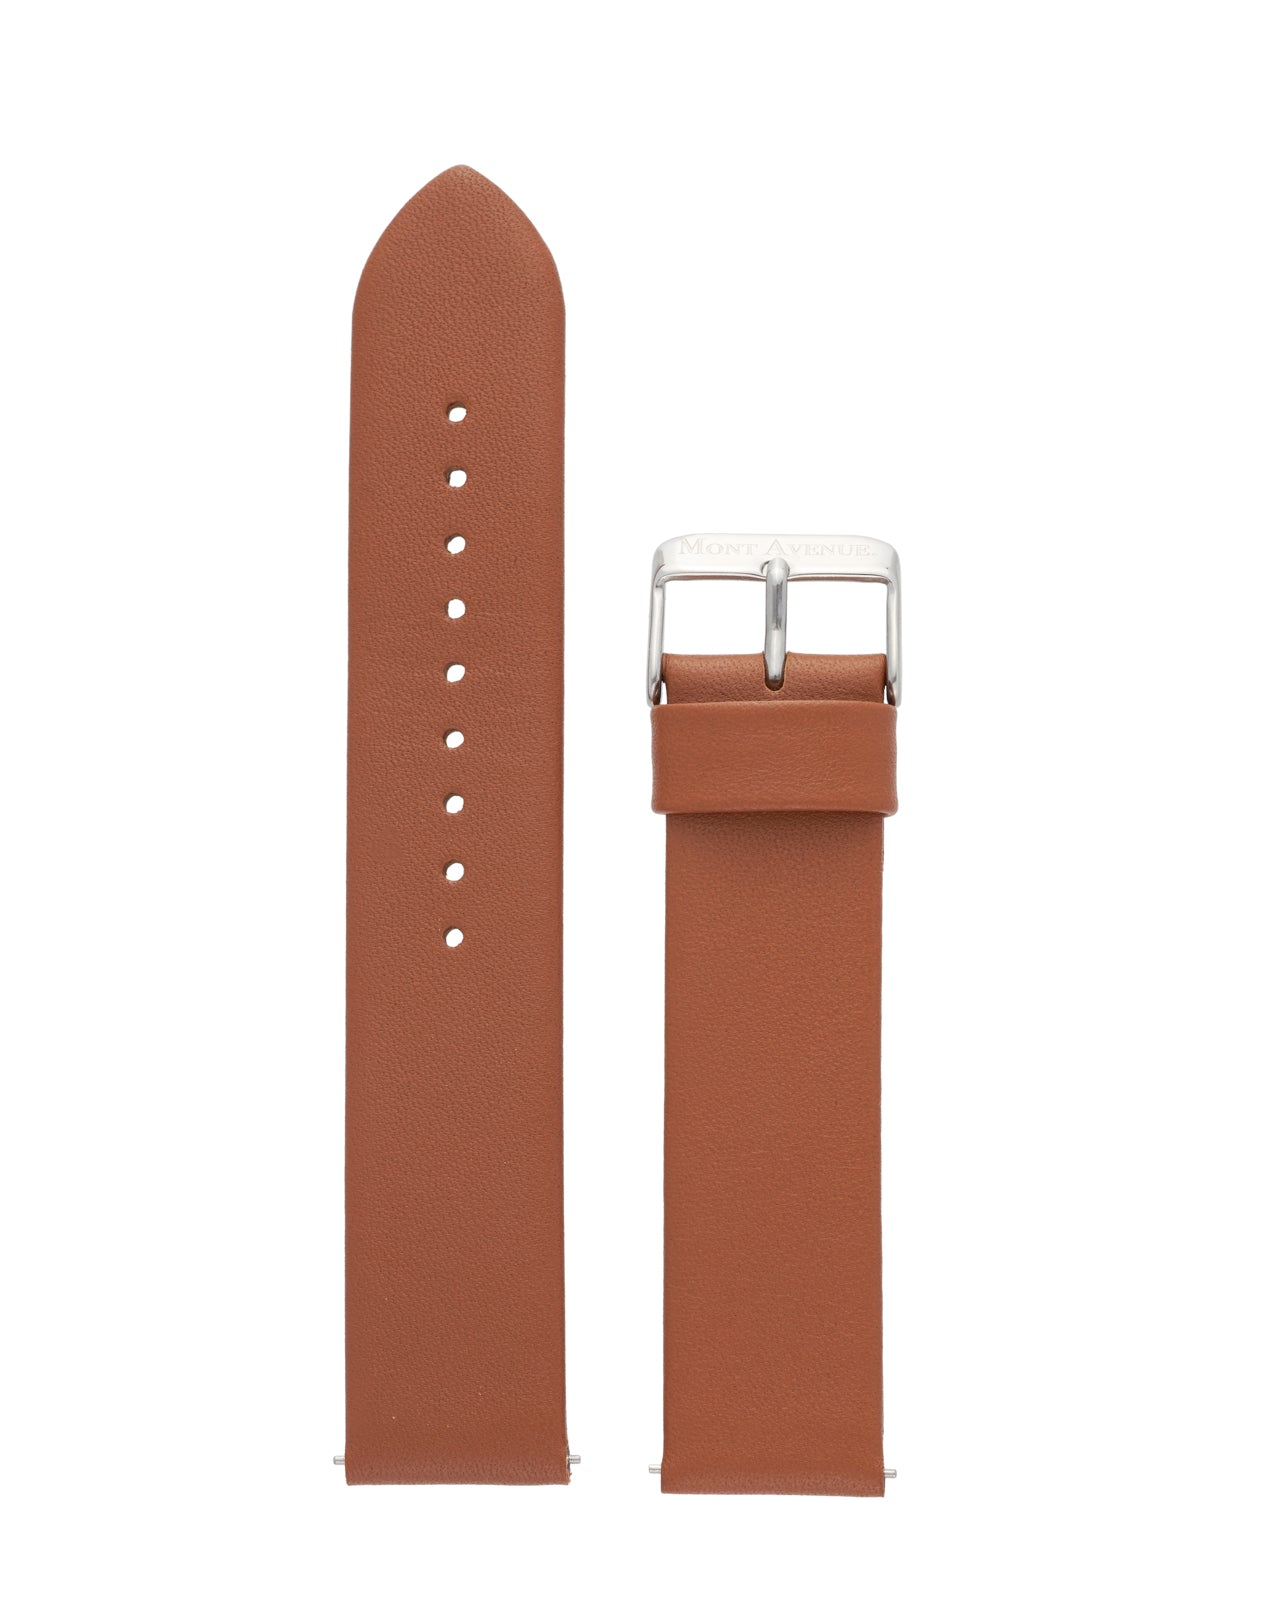 BROWN & SILVER LEATHER STRAP